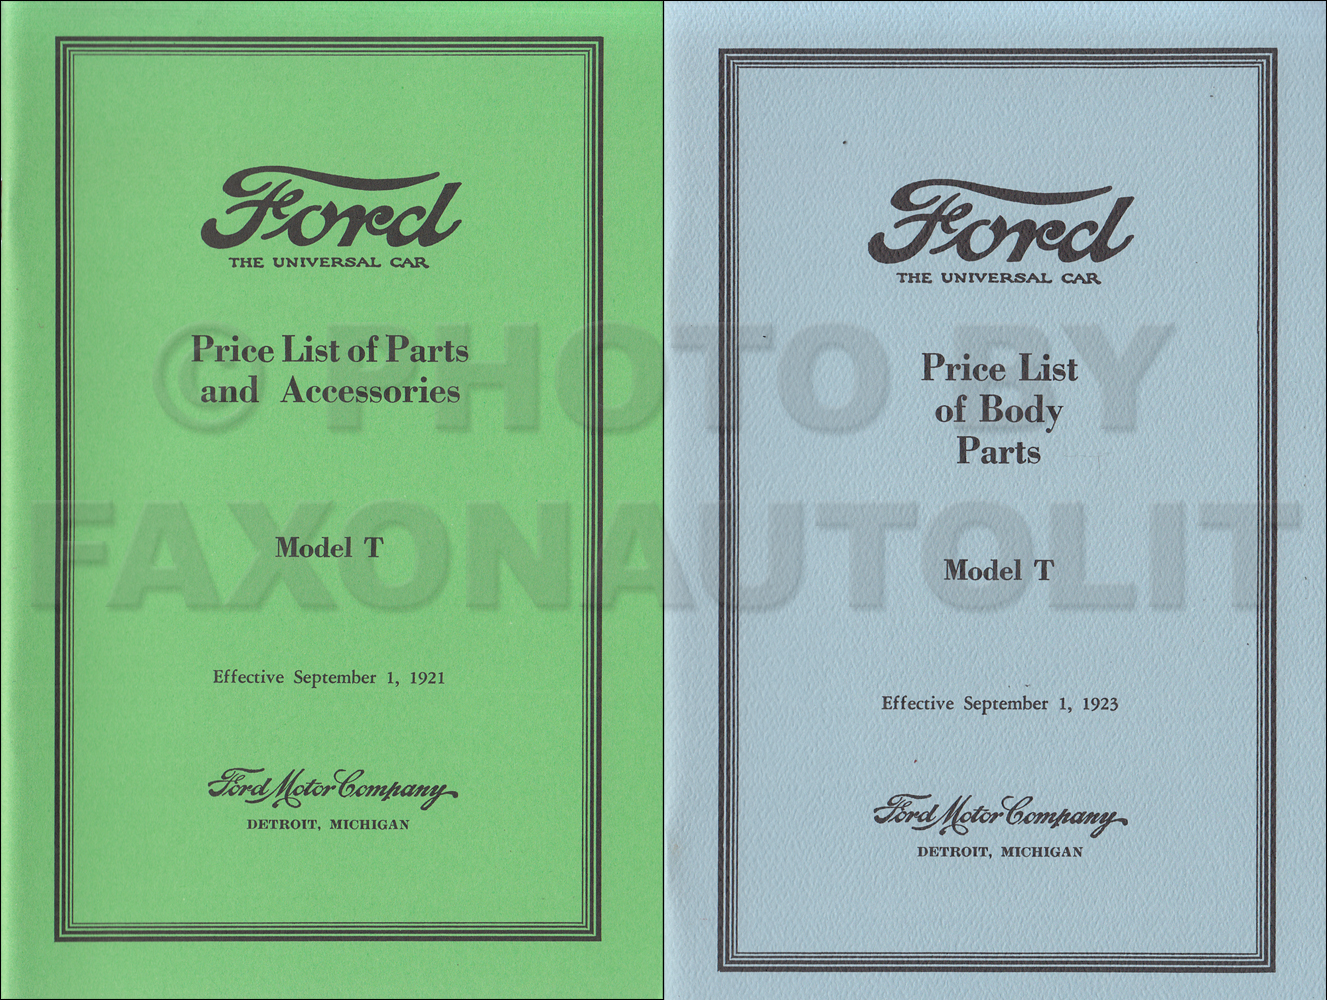 1924 ford model t wiring diagram 3 phase motor star delta 1909 1927 repair shop manual cd extra carb